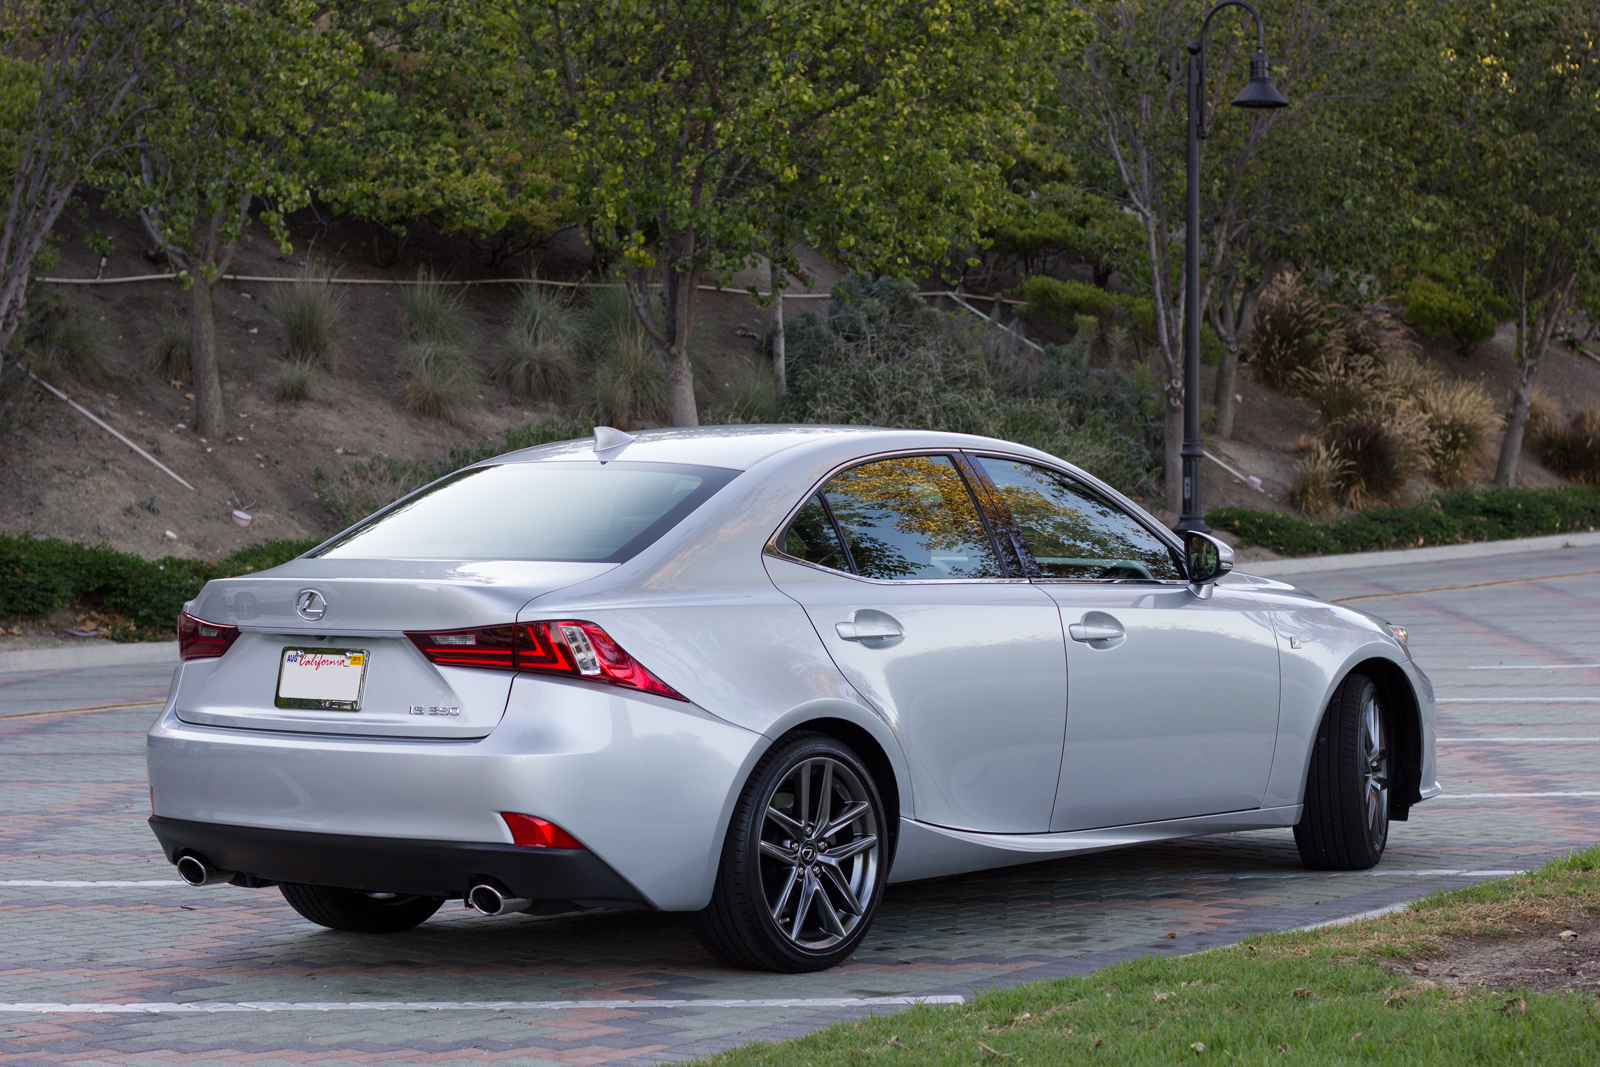 2015 lexus is 350 f sport reviewed video tmr zoo. Black Bedroom Furniture Sets. Home Design Ideas